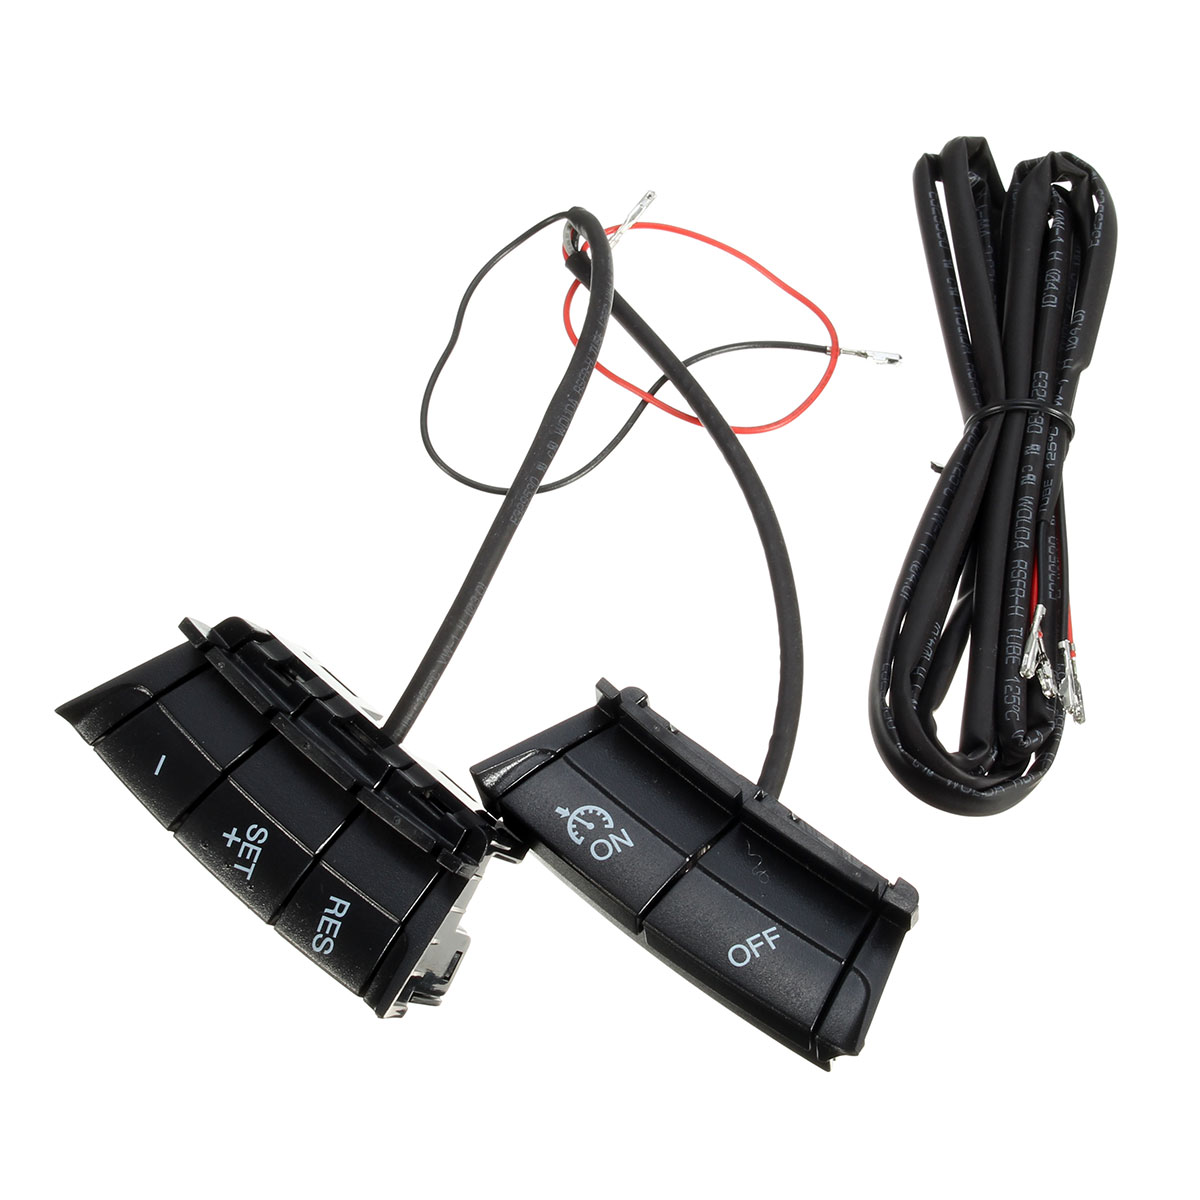 Car Speed Control Switch Cruise System Kit For Ford Focus Wiring Harness Kits St 2 2005 2007 2008 2009 2010 2011 Steering Wheel In Switches Relays From